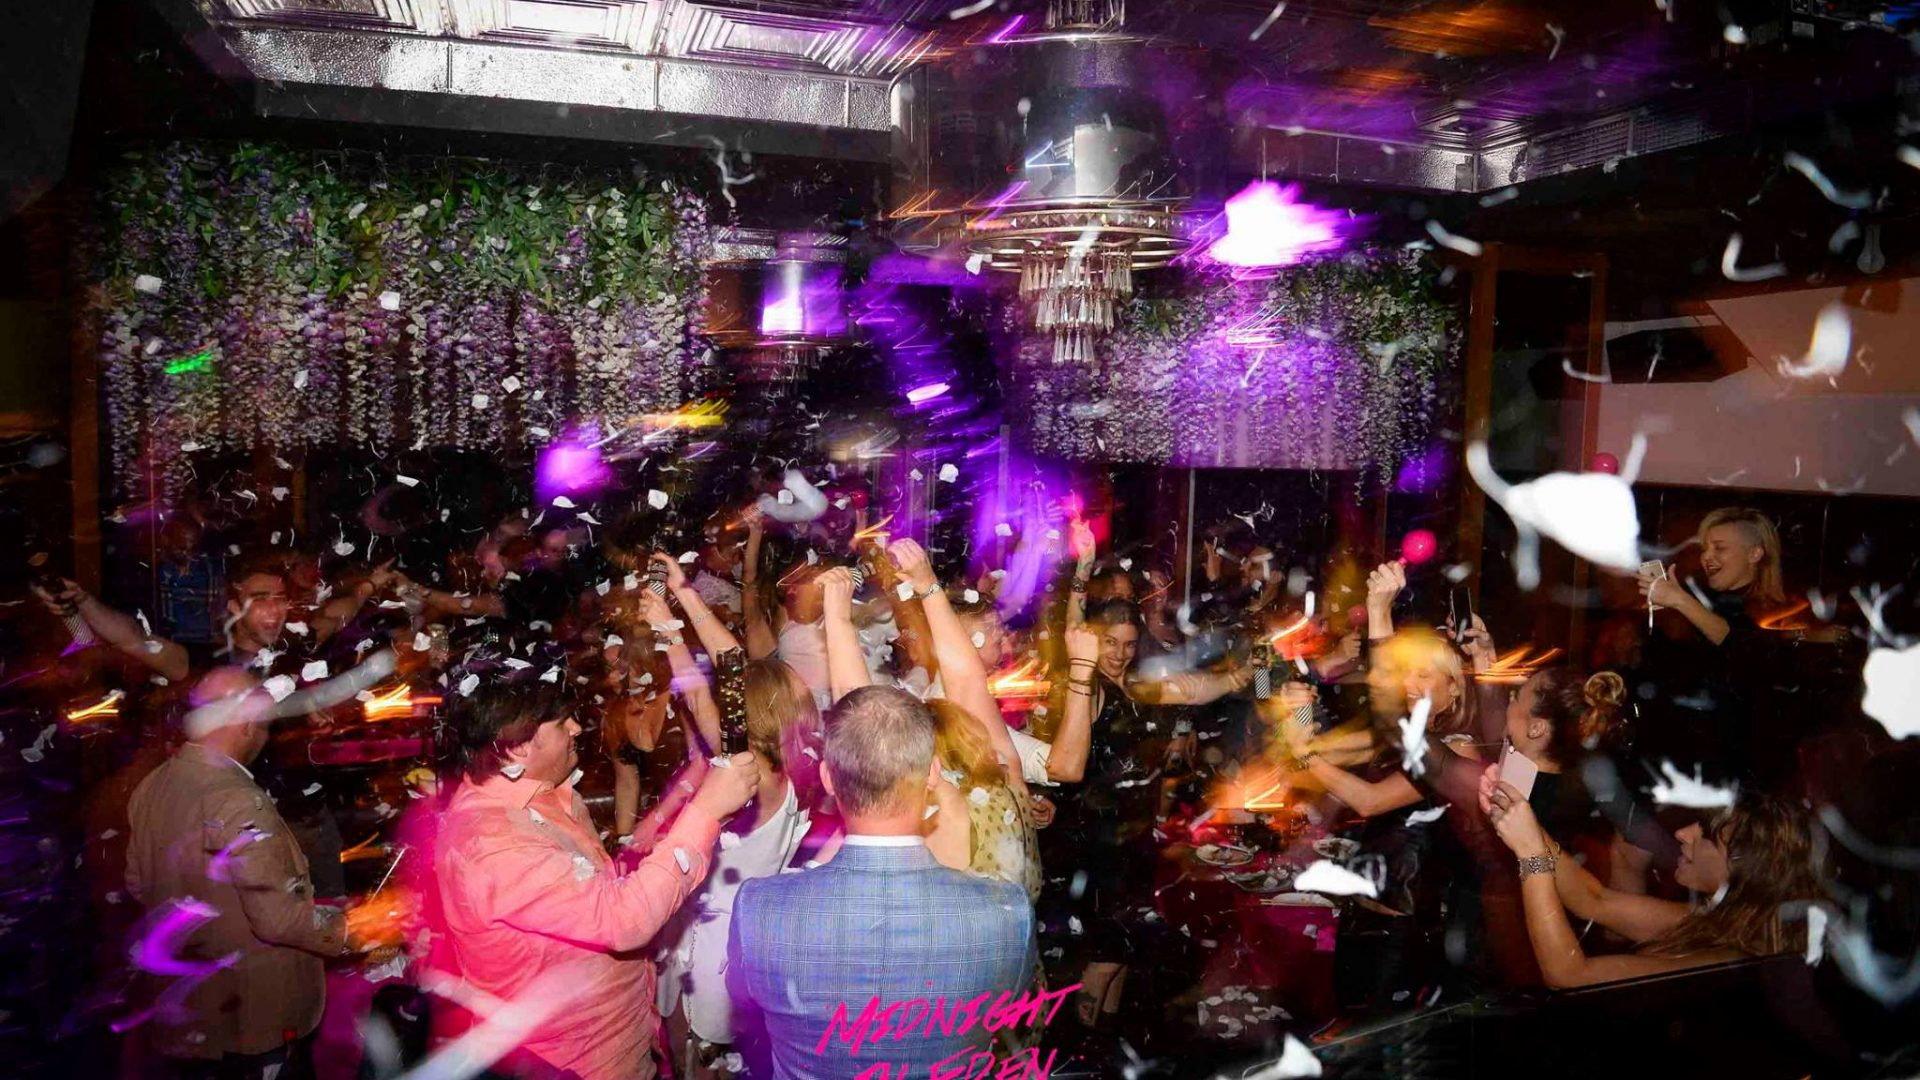 new years eve miami, baoli beach, baoli menu prices, baoli miami dress code, miami beach tonight, friday night miami